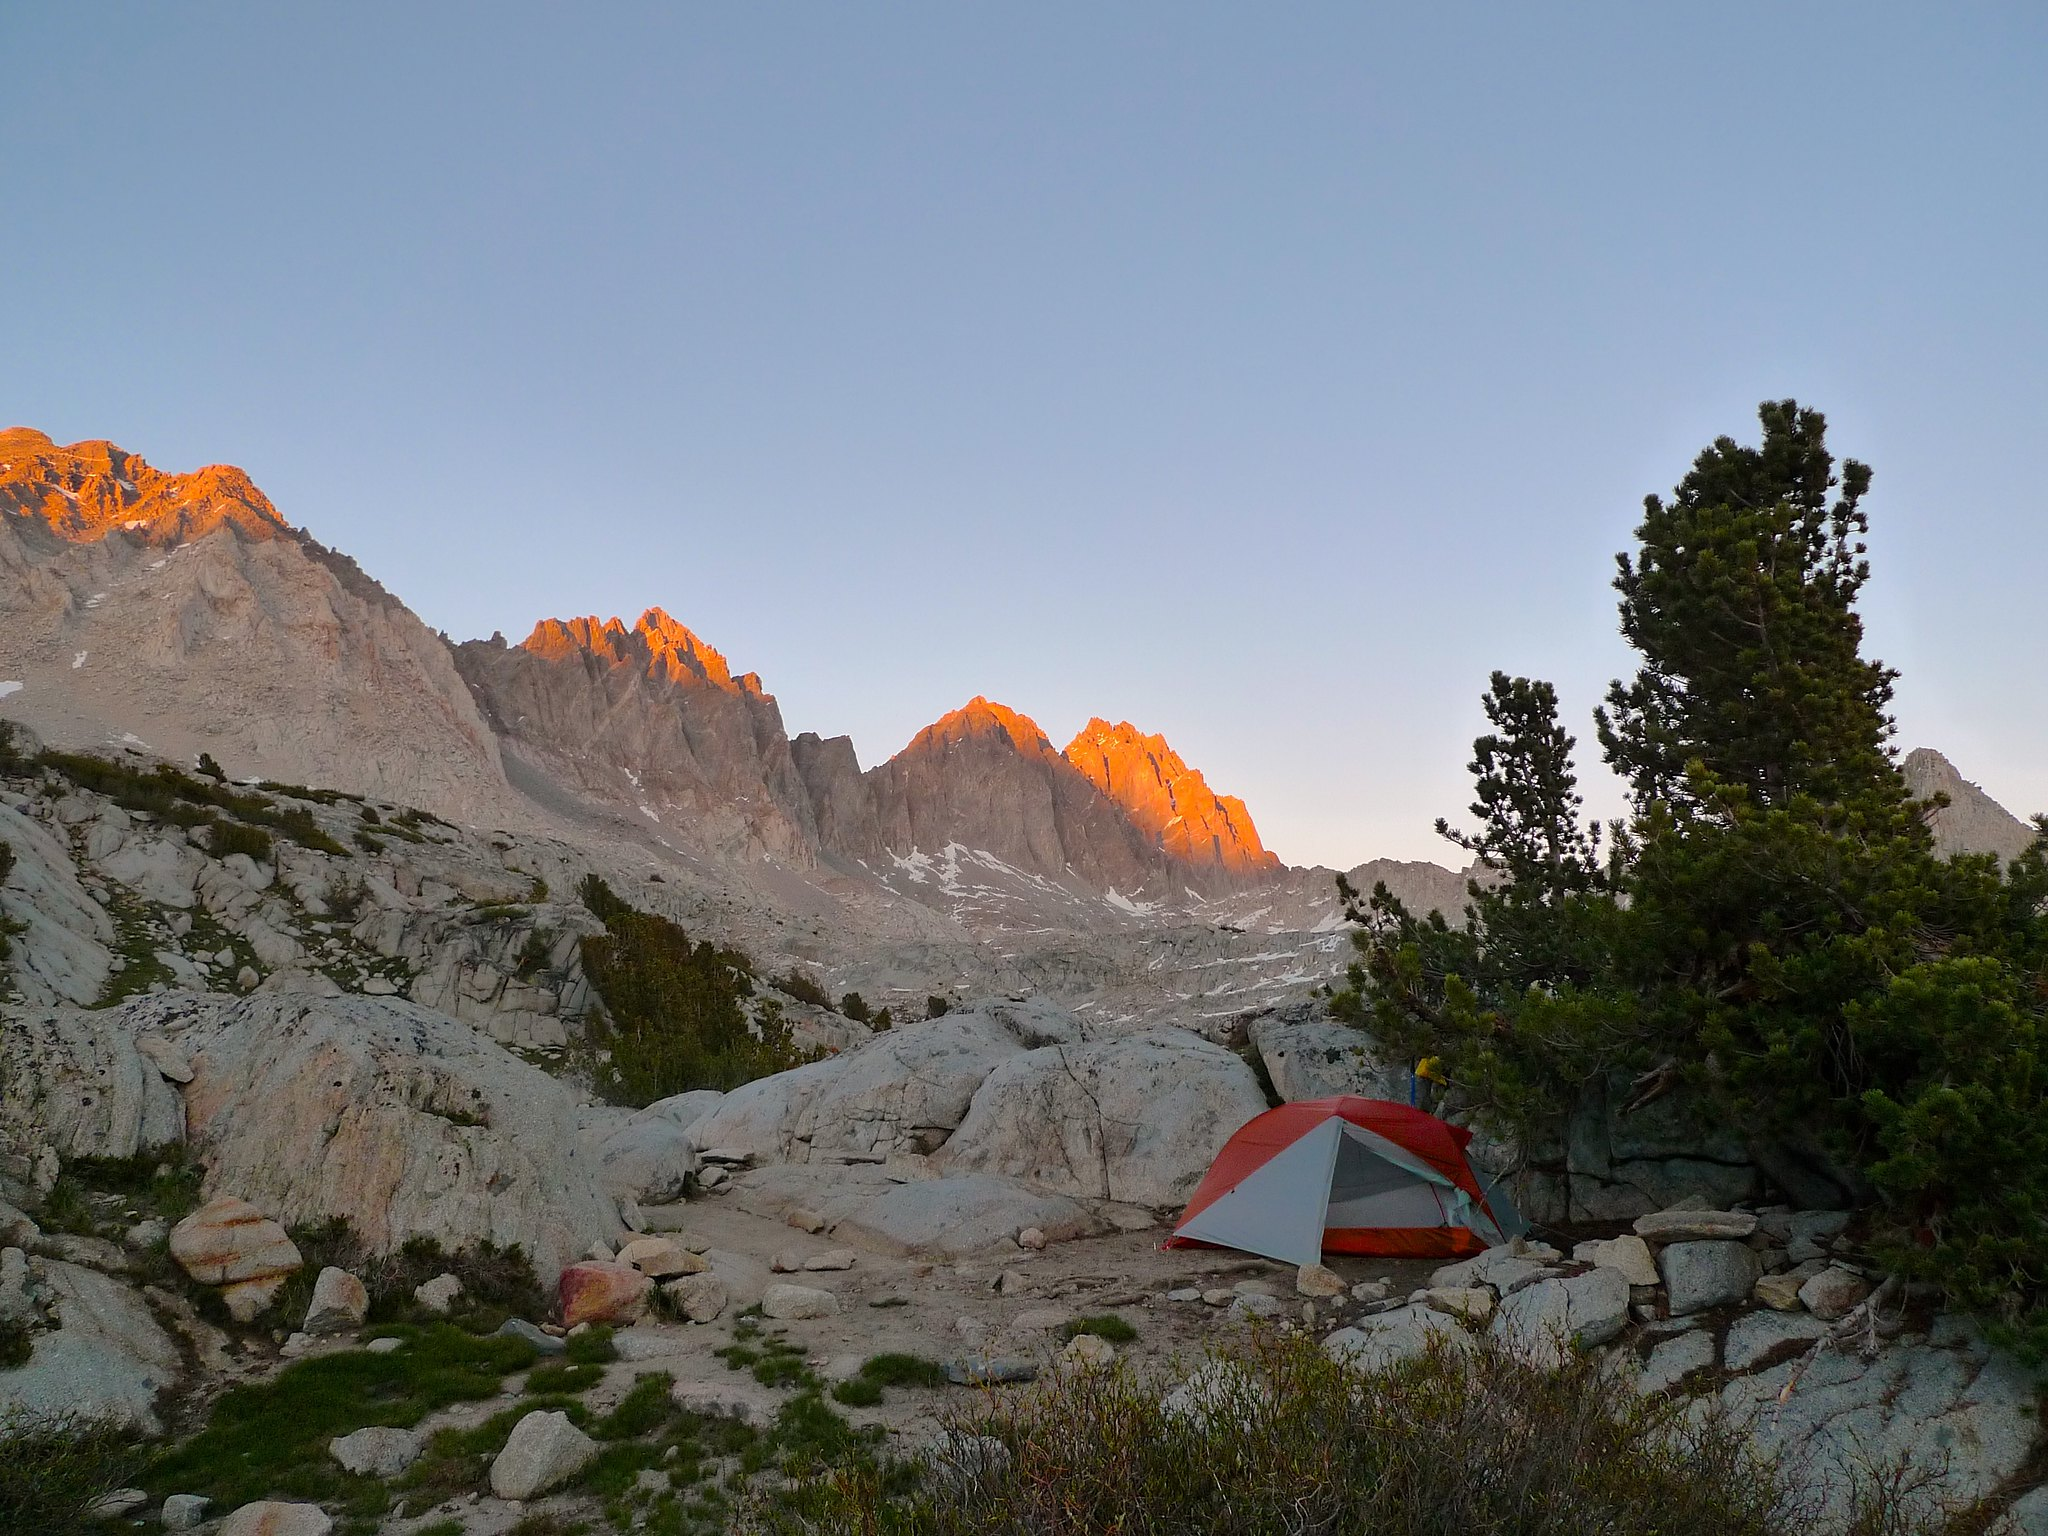 Sunset alpenglow above my camp in upper Dusy Basin